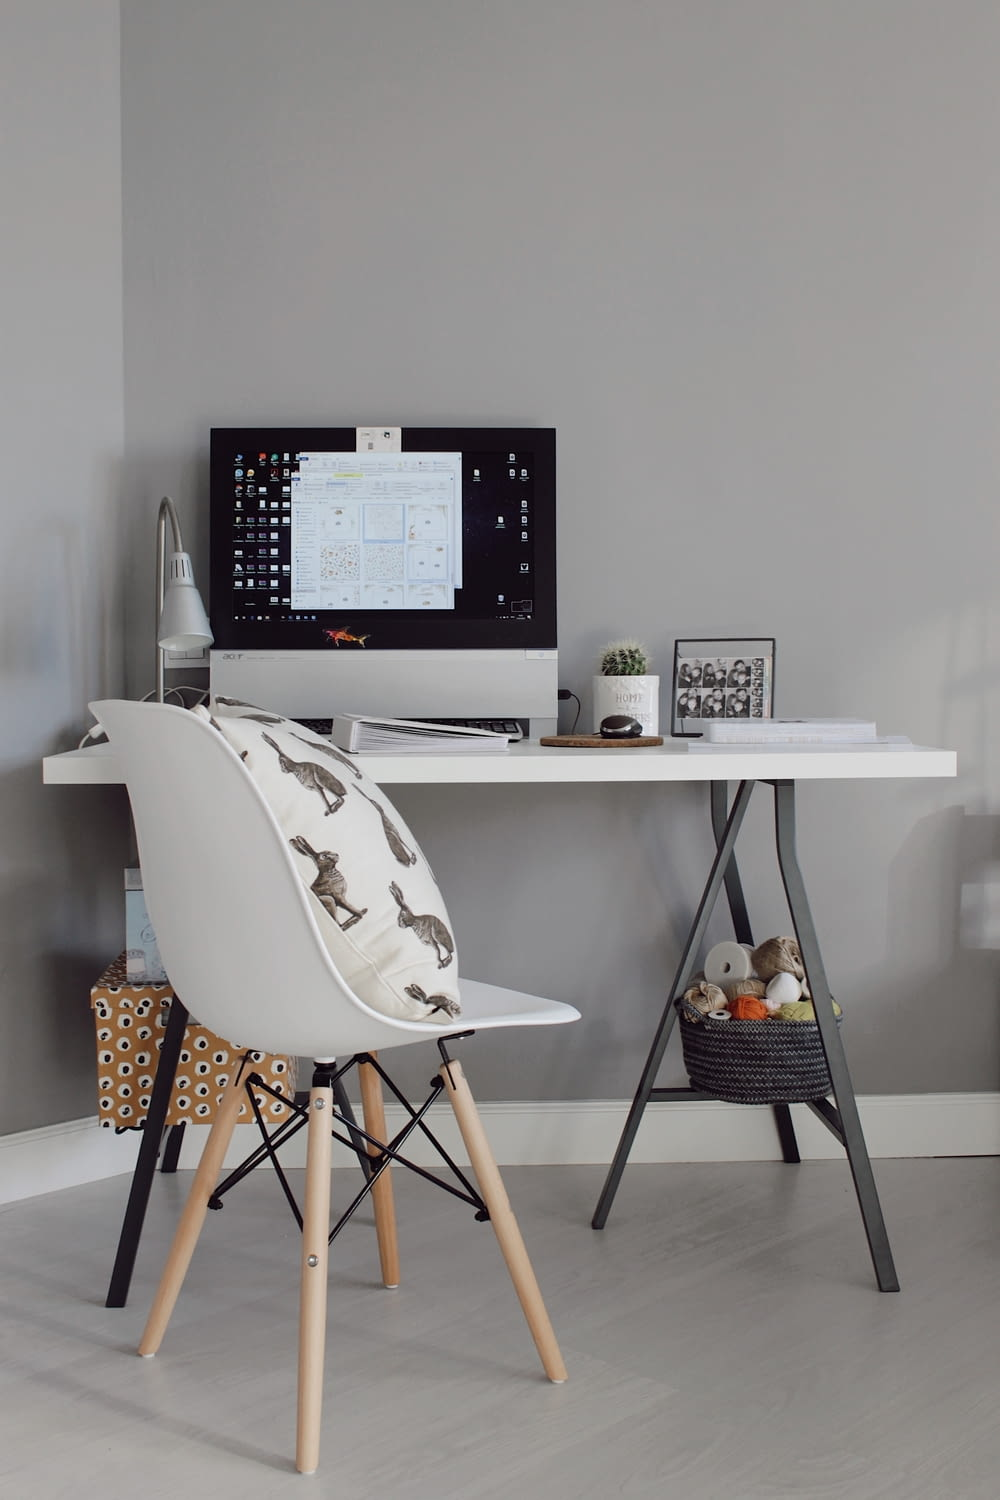 black flat screen computer monitor on white wooden table